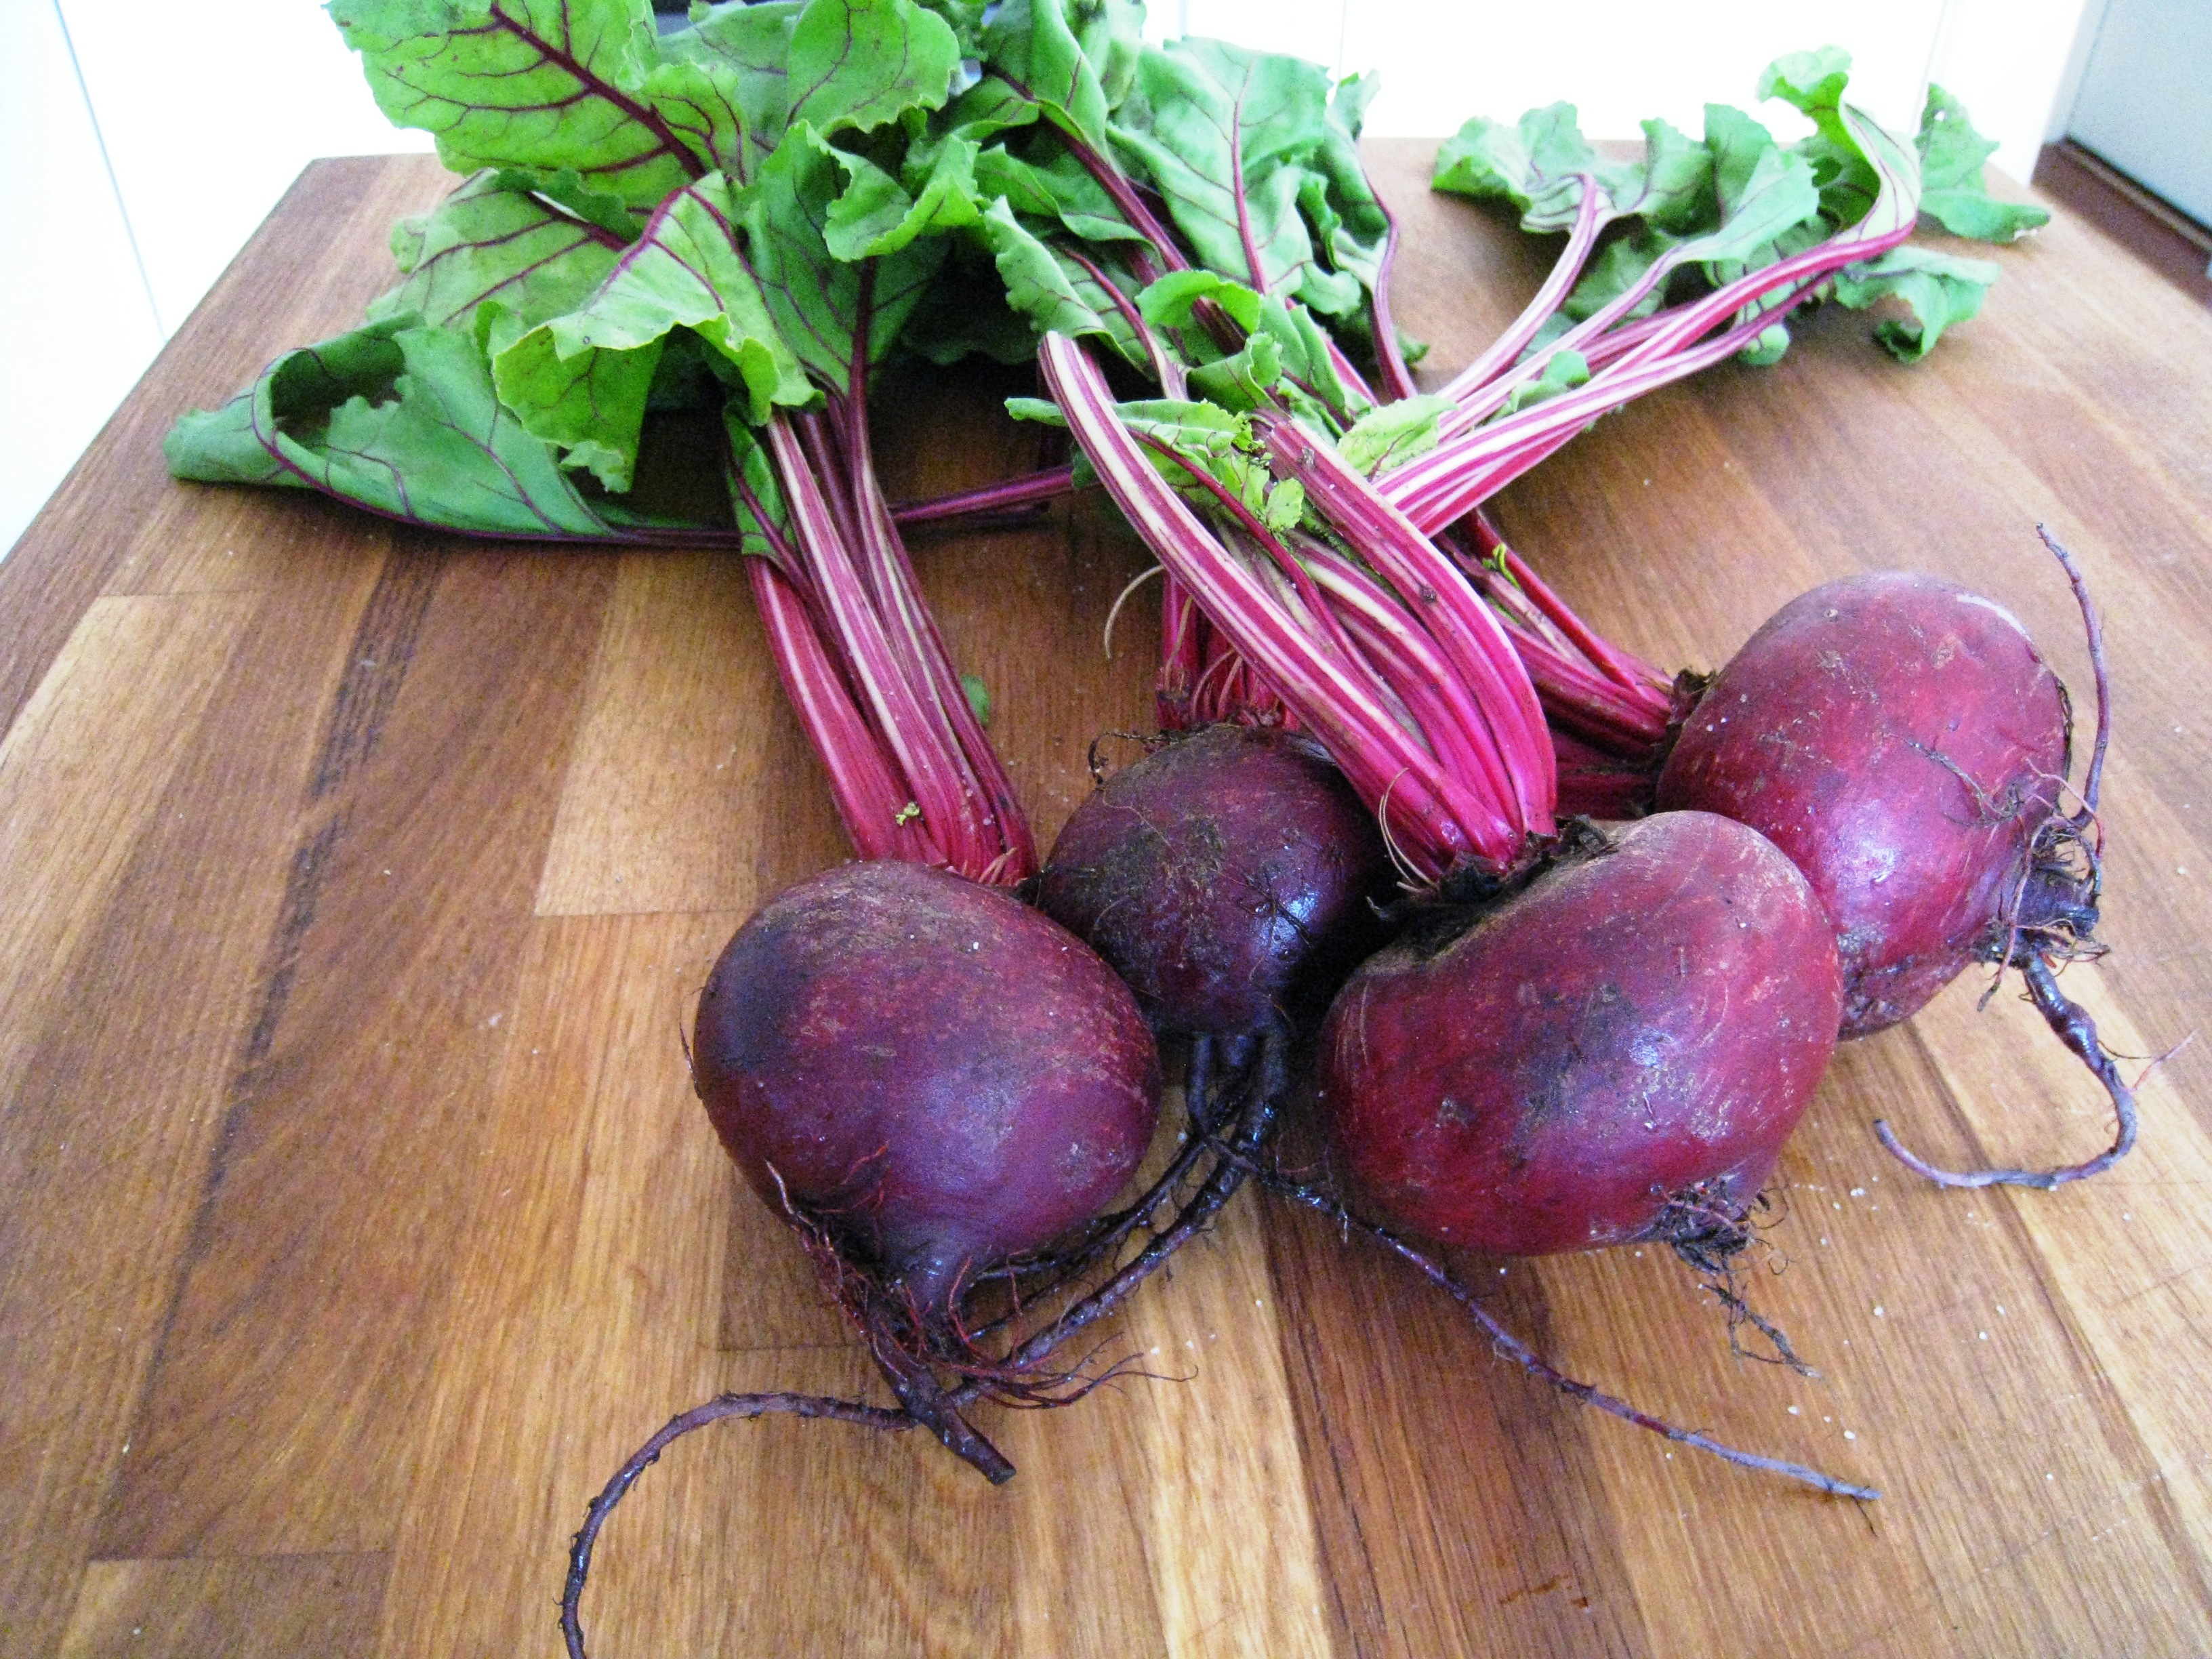 Beetroot (Beta vulgaris) - Medicinal : Herblore